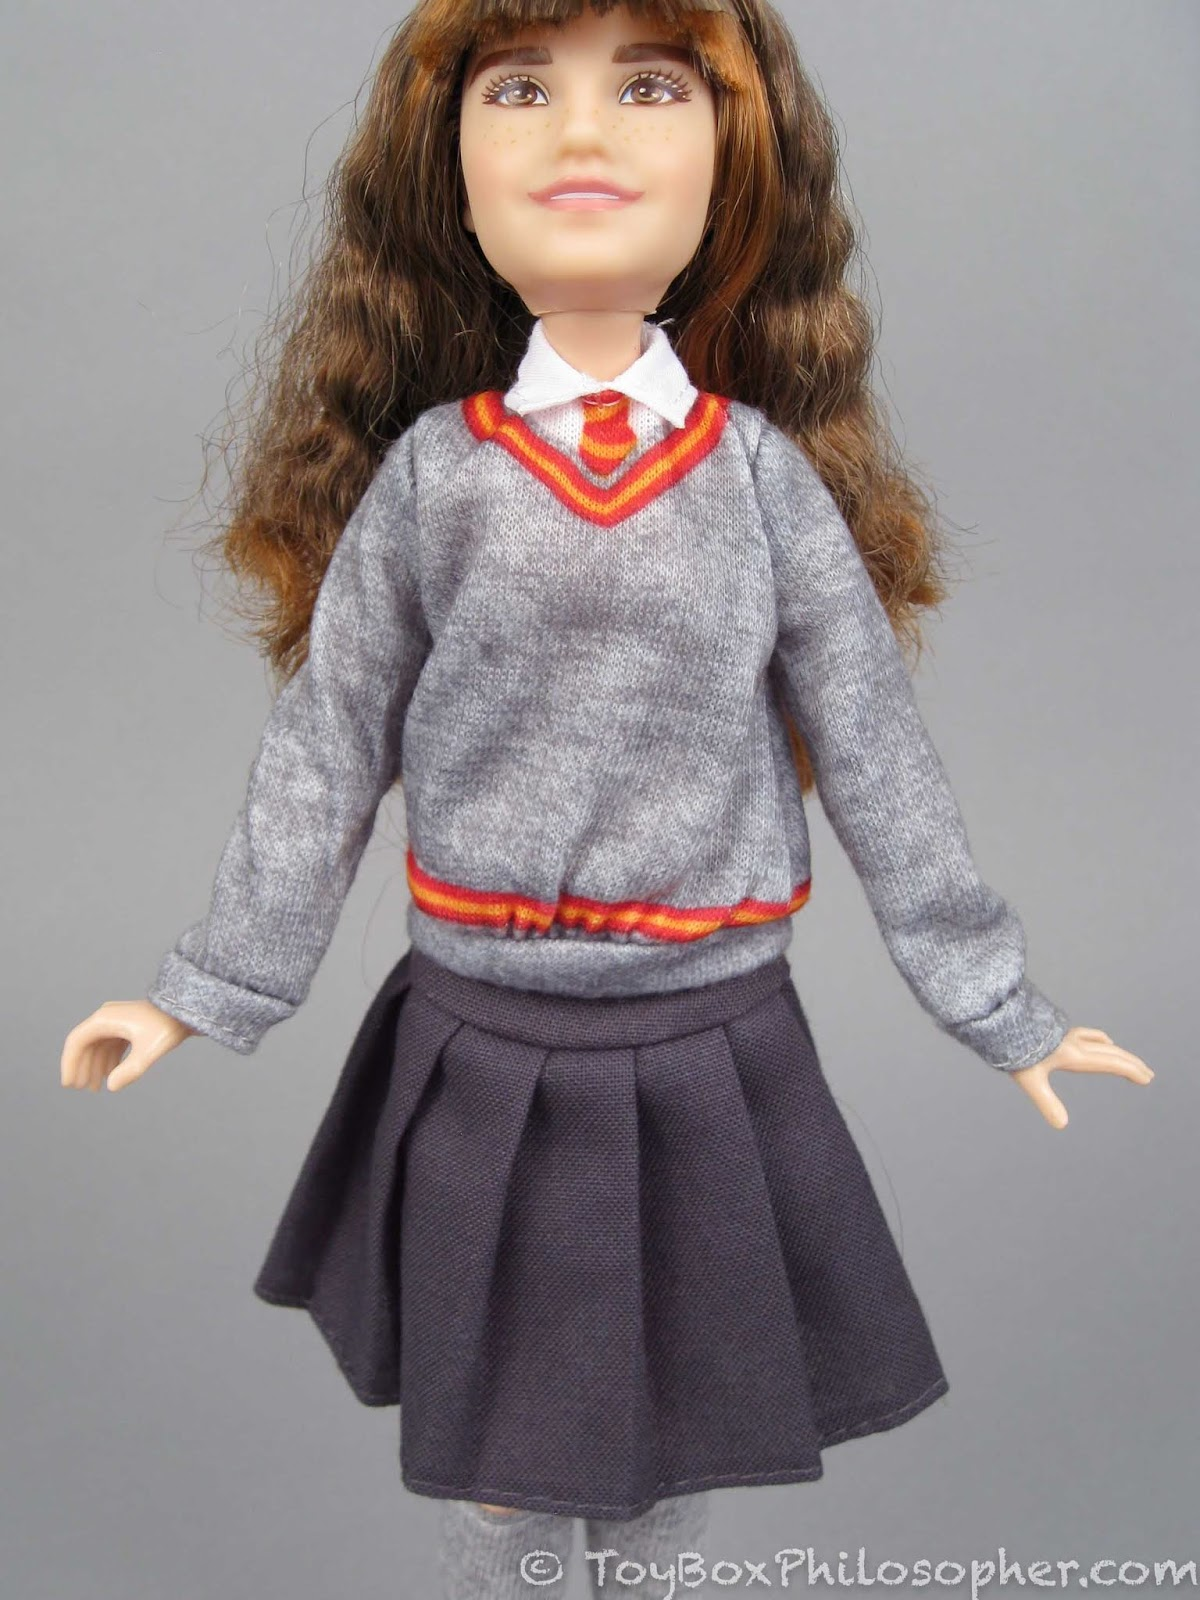 Wizarding World Hermione Granger By Mattel The Toy Box